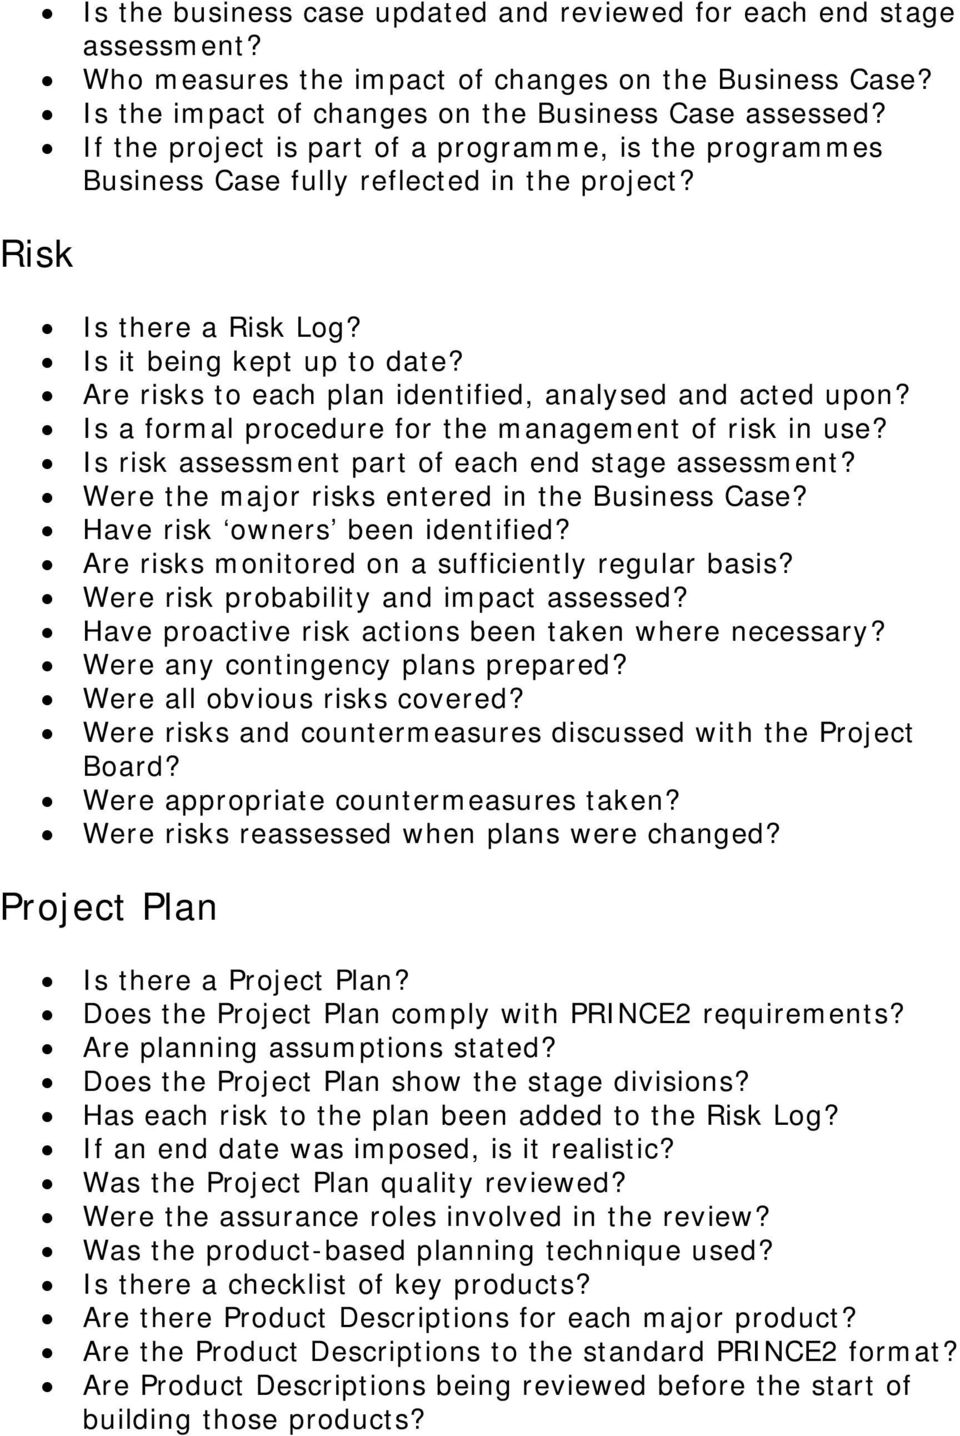 Are risks to each plan identified, analysed and acted upon? Is a formal procedure for the management of risk in use? Is risk assessment part of each end stage assessment?